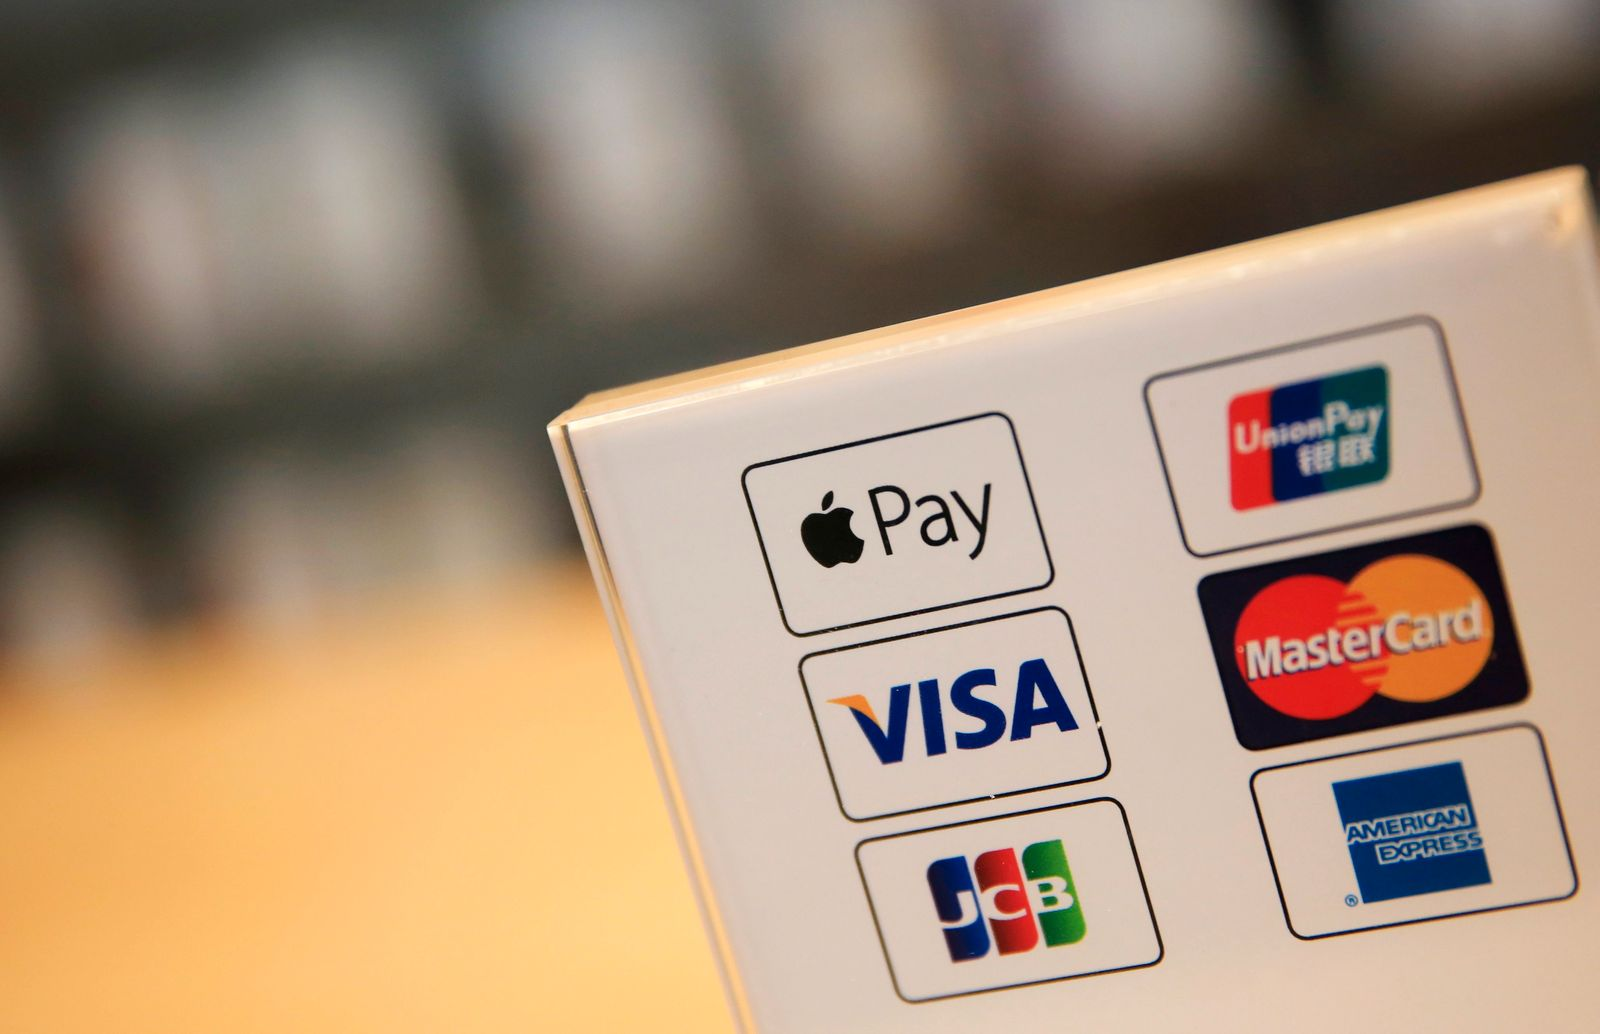 Apple launches mobile payment service Apple Pay in China